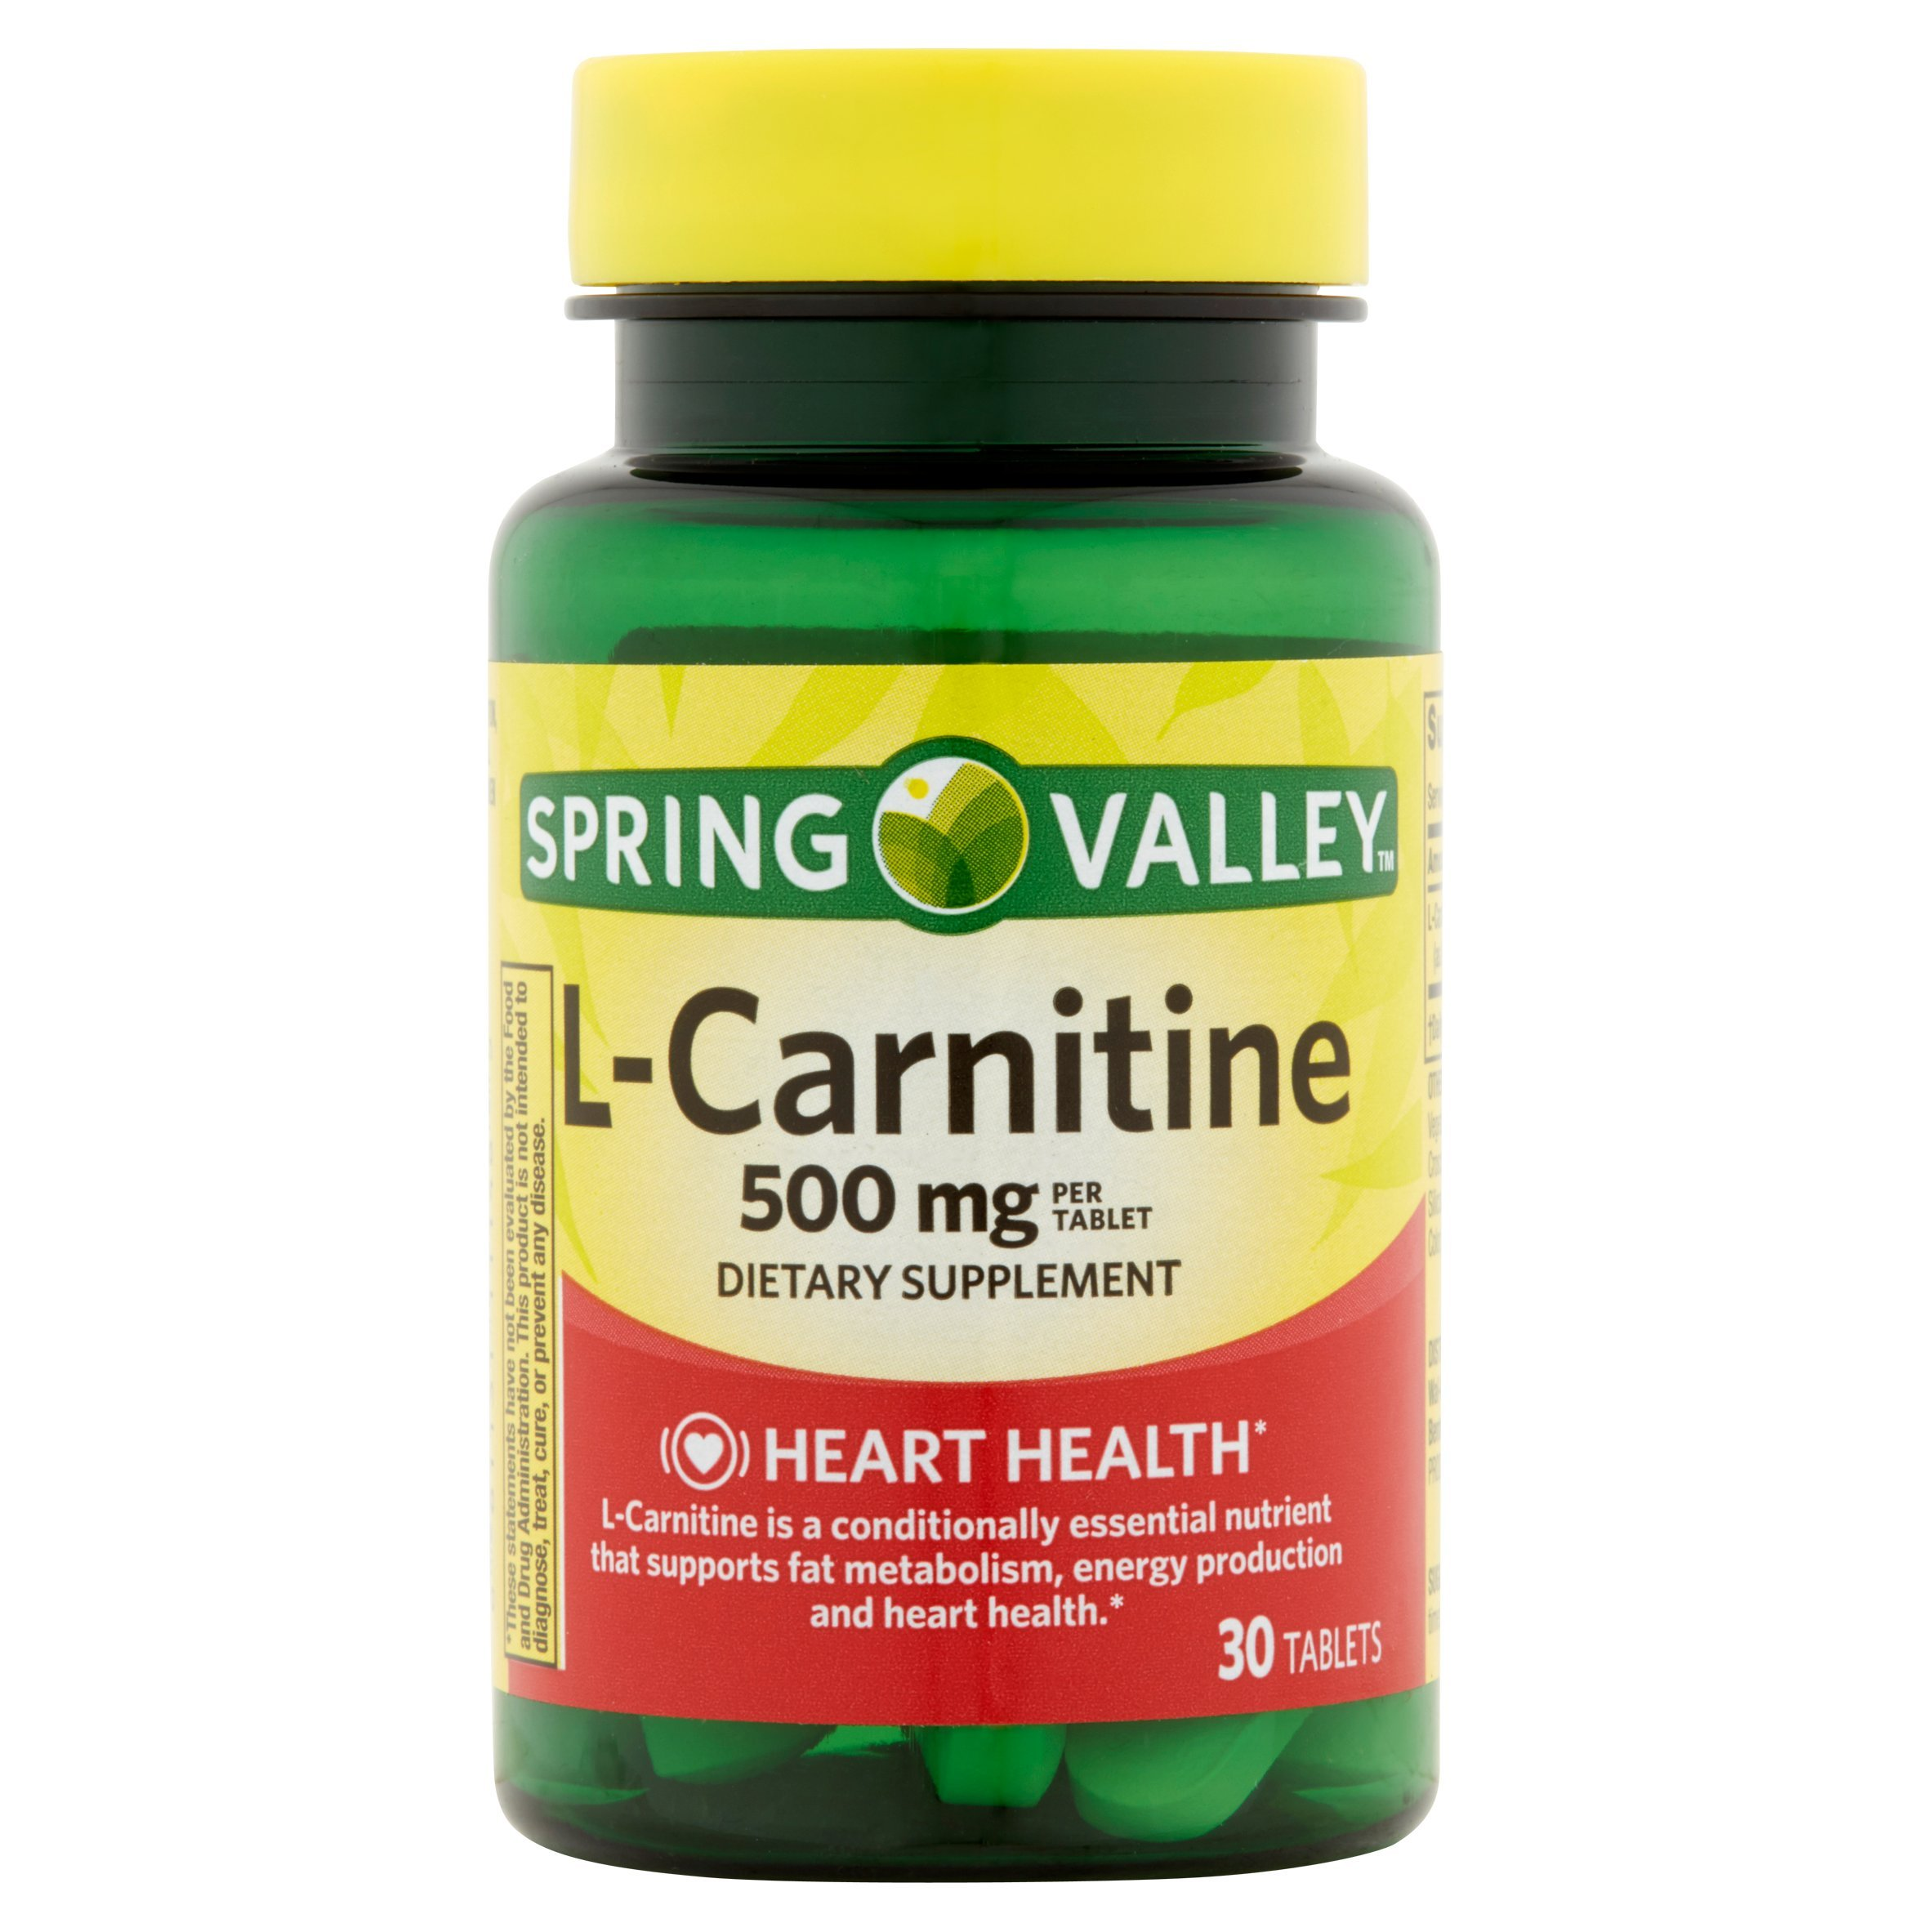 Spring Valley 30 Tablets 500 mg L-Carnitine Dietary Supplement 30